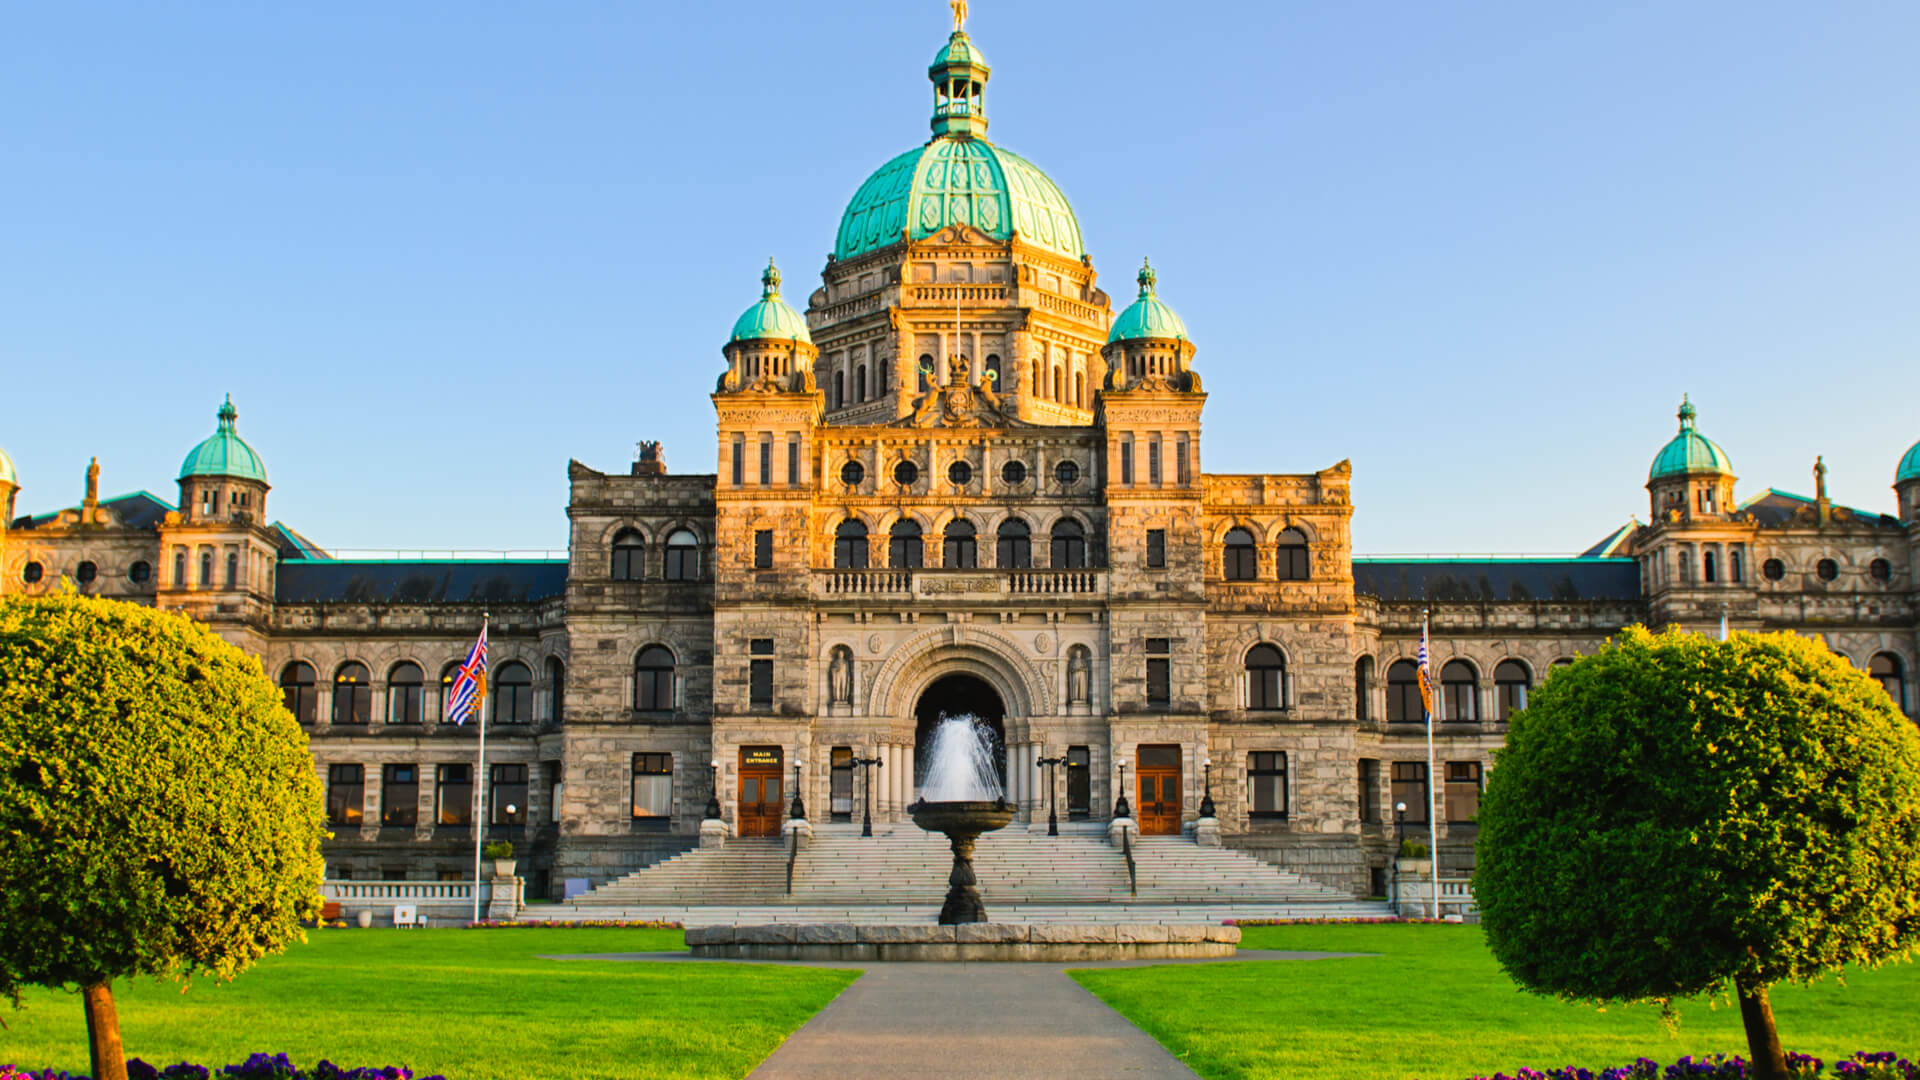 British Columbia Parliment Building in Victoria on a sunny day